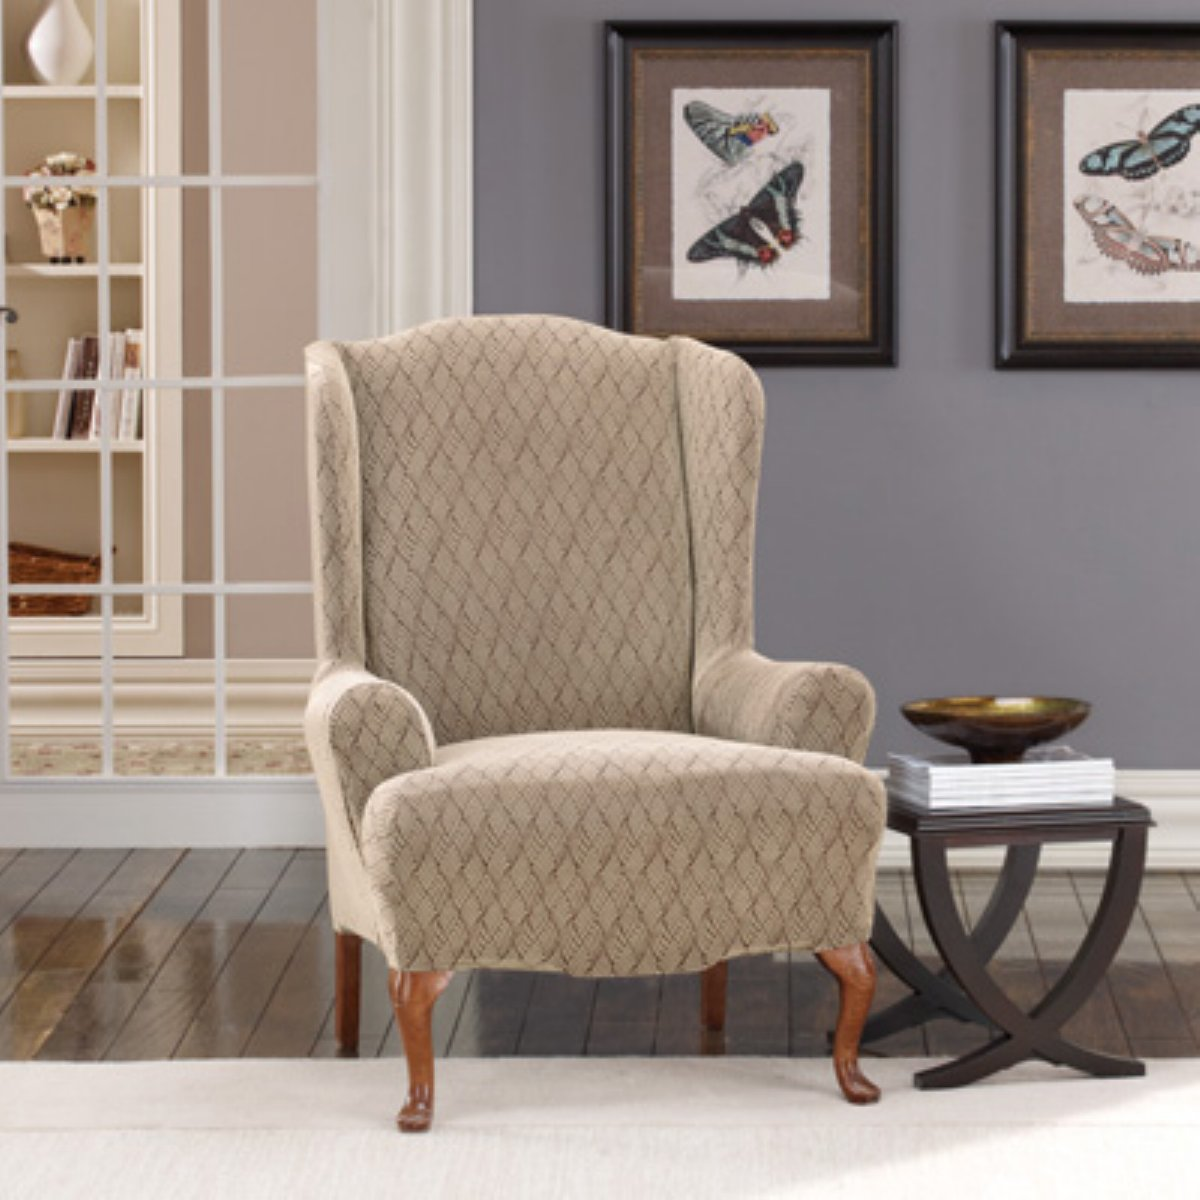 pretty chair with chic surefit cover on wooden floor with white rug for living room decor ideas